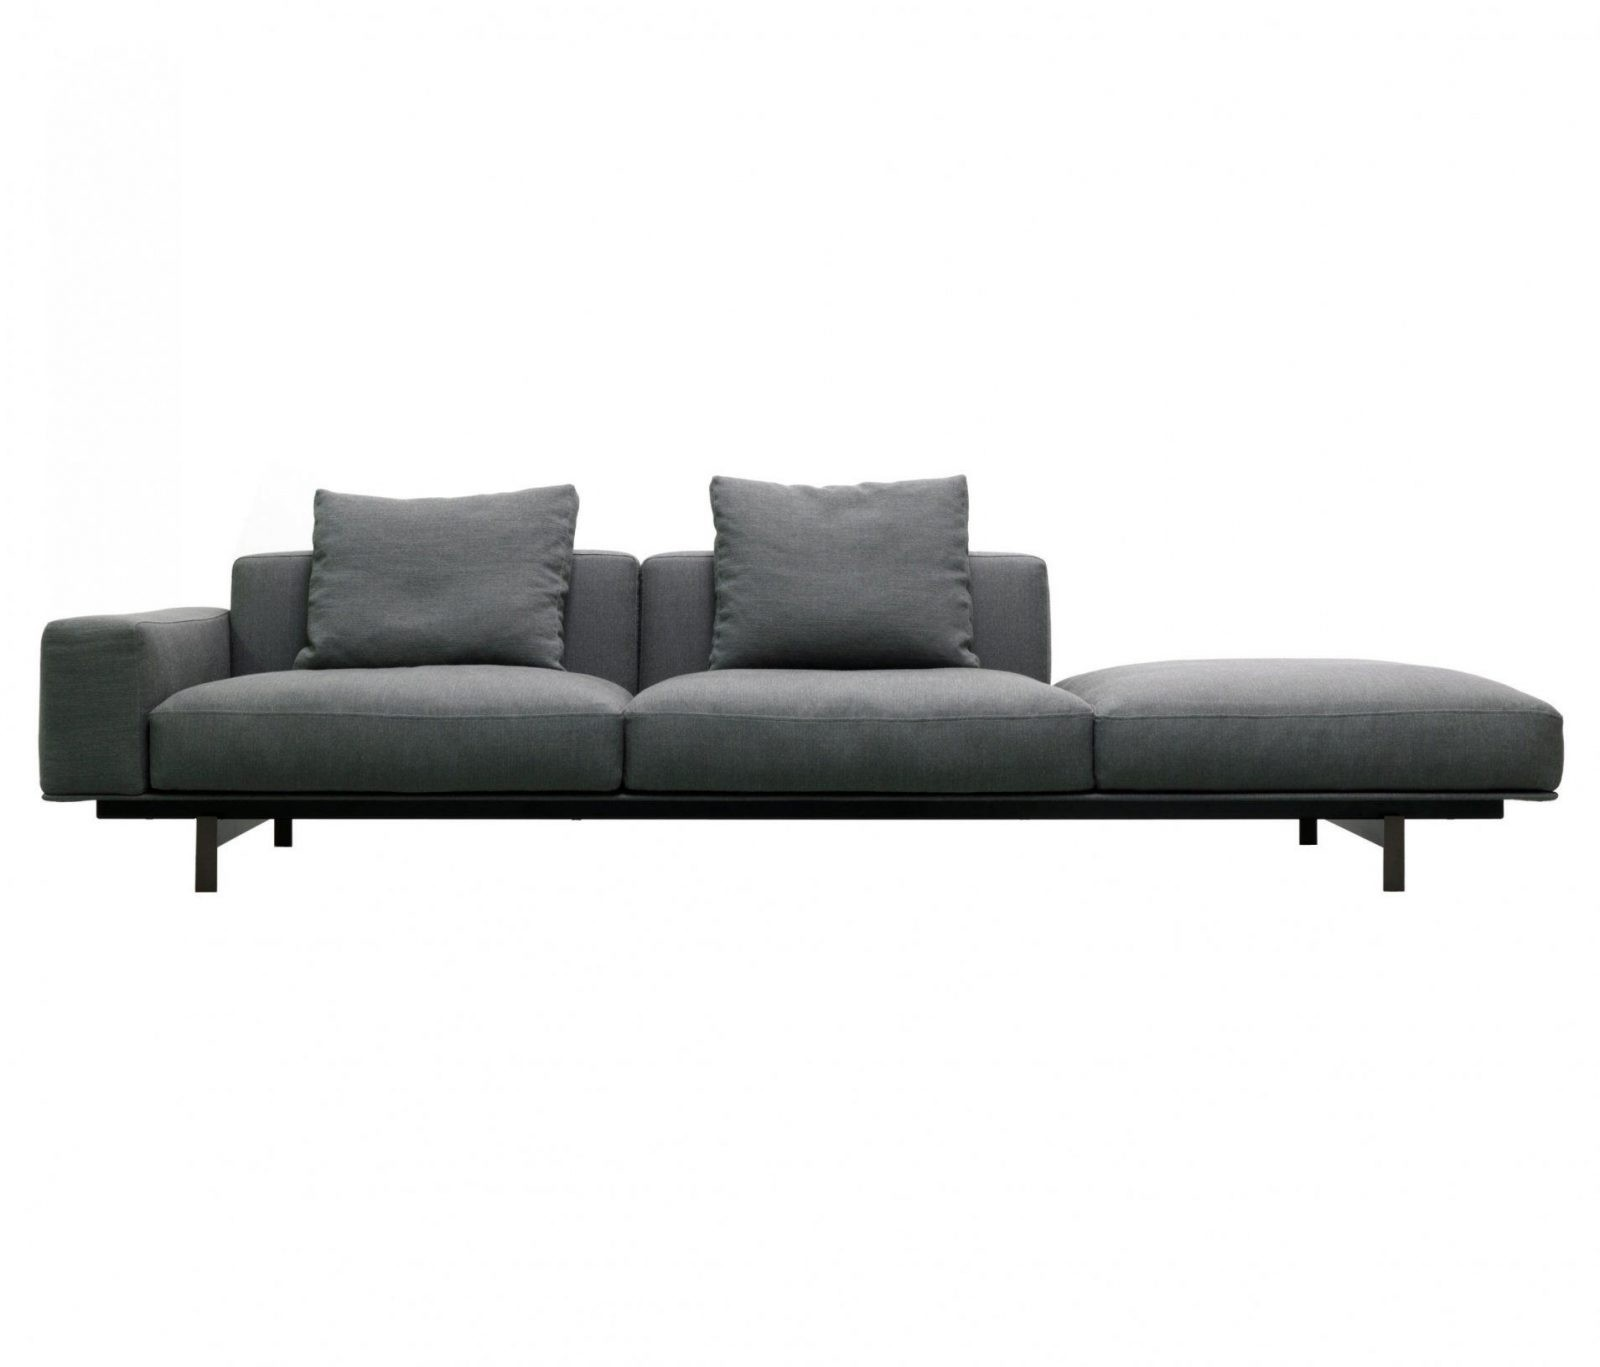 Yard  Lounge Sofas From Lema  Architonic von Seats And Sofas Köln Photo